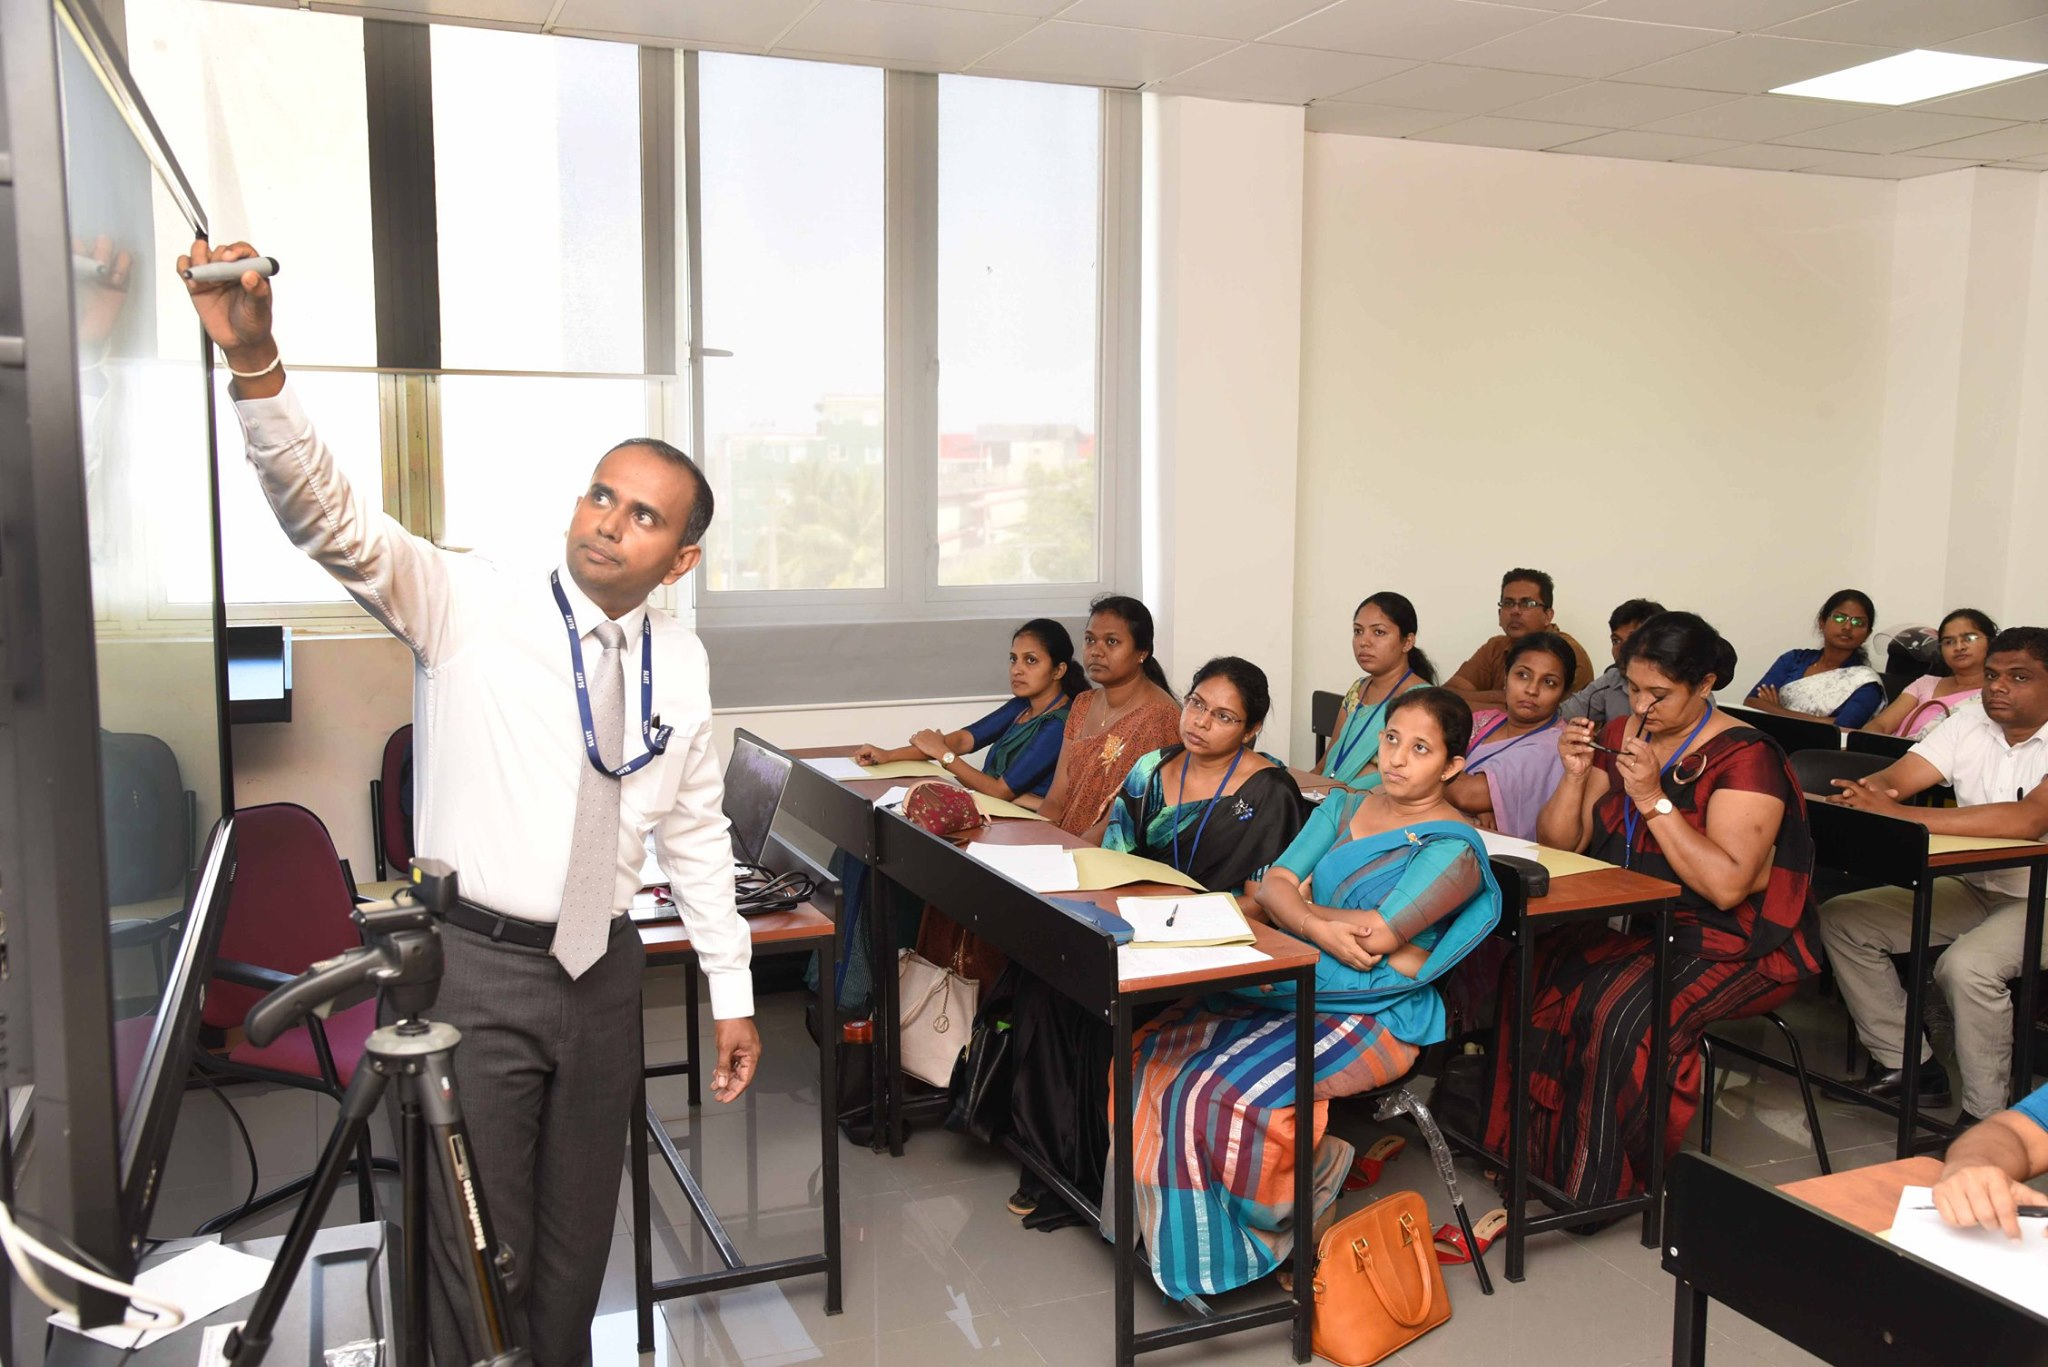 A-workshop-on-Effective-use-of-Interactive-Touch-Screens-for-Teaching-and-Learning